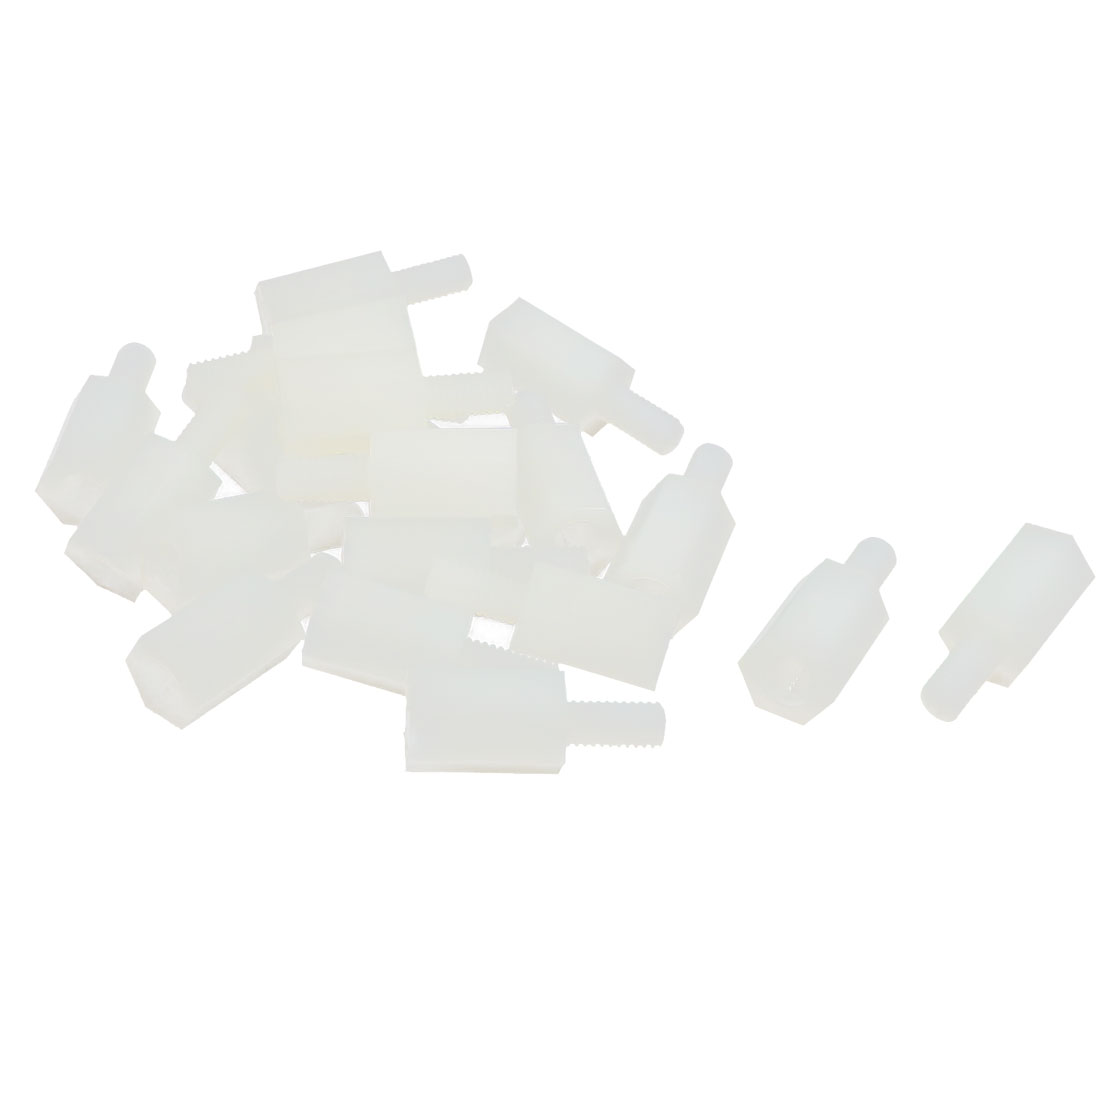 20pcs M3 9+6mm Male Female Thread Beige Nylon Hex Hexagonal Nut PCB Standoff Spacer Support